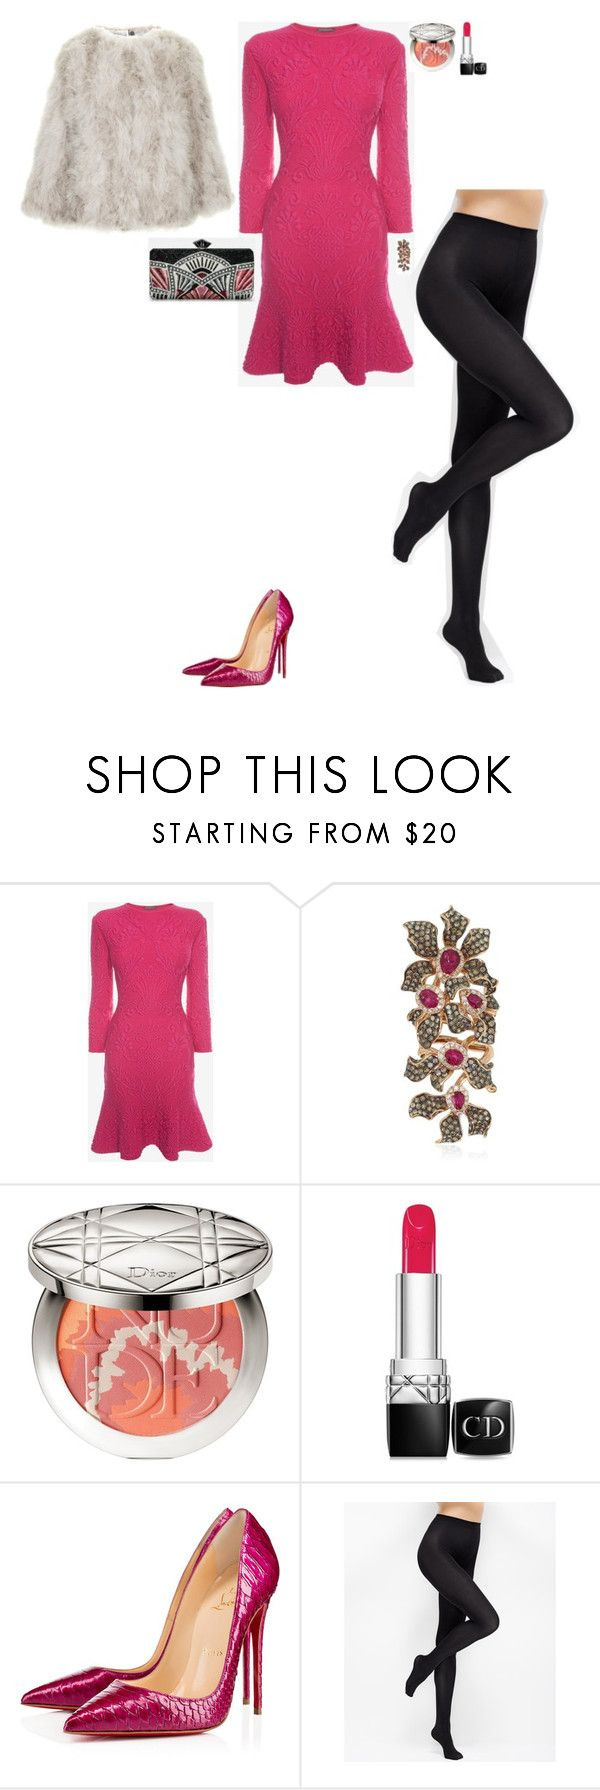 """""""Dinner with Damon and Hayley"""" by stylev ❤ liked on Polyvore featuring Alexander McQueen, Wendy Yue, Christian Dior, Christian Louboutin, Judith Leiber, Ann Taylor and Topshop"""